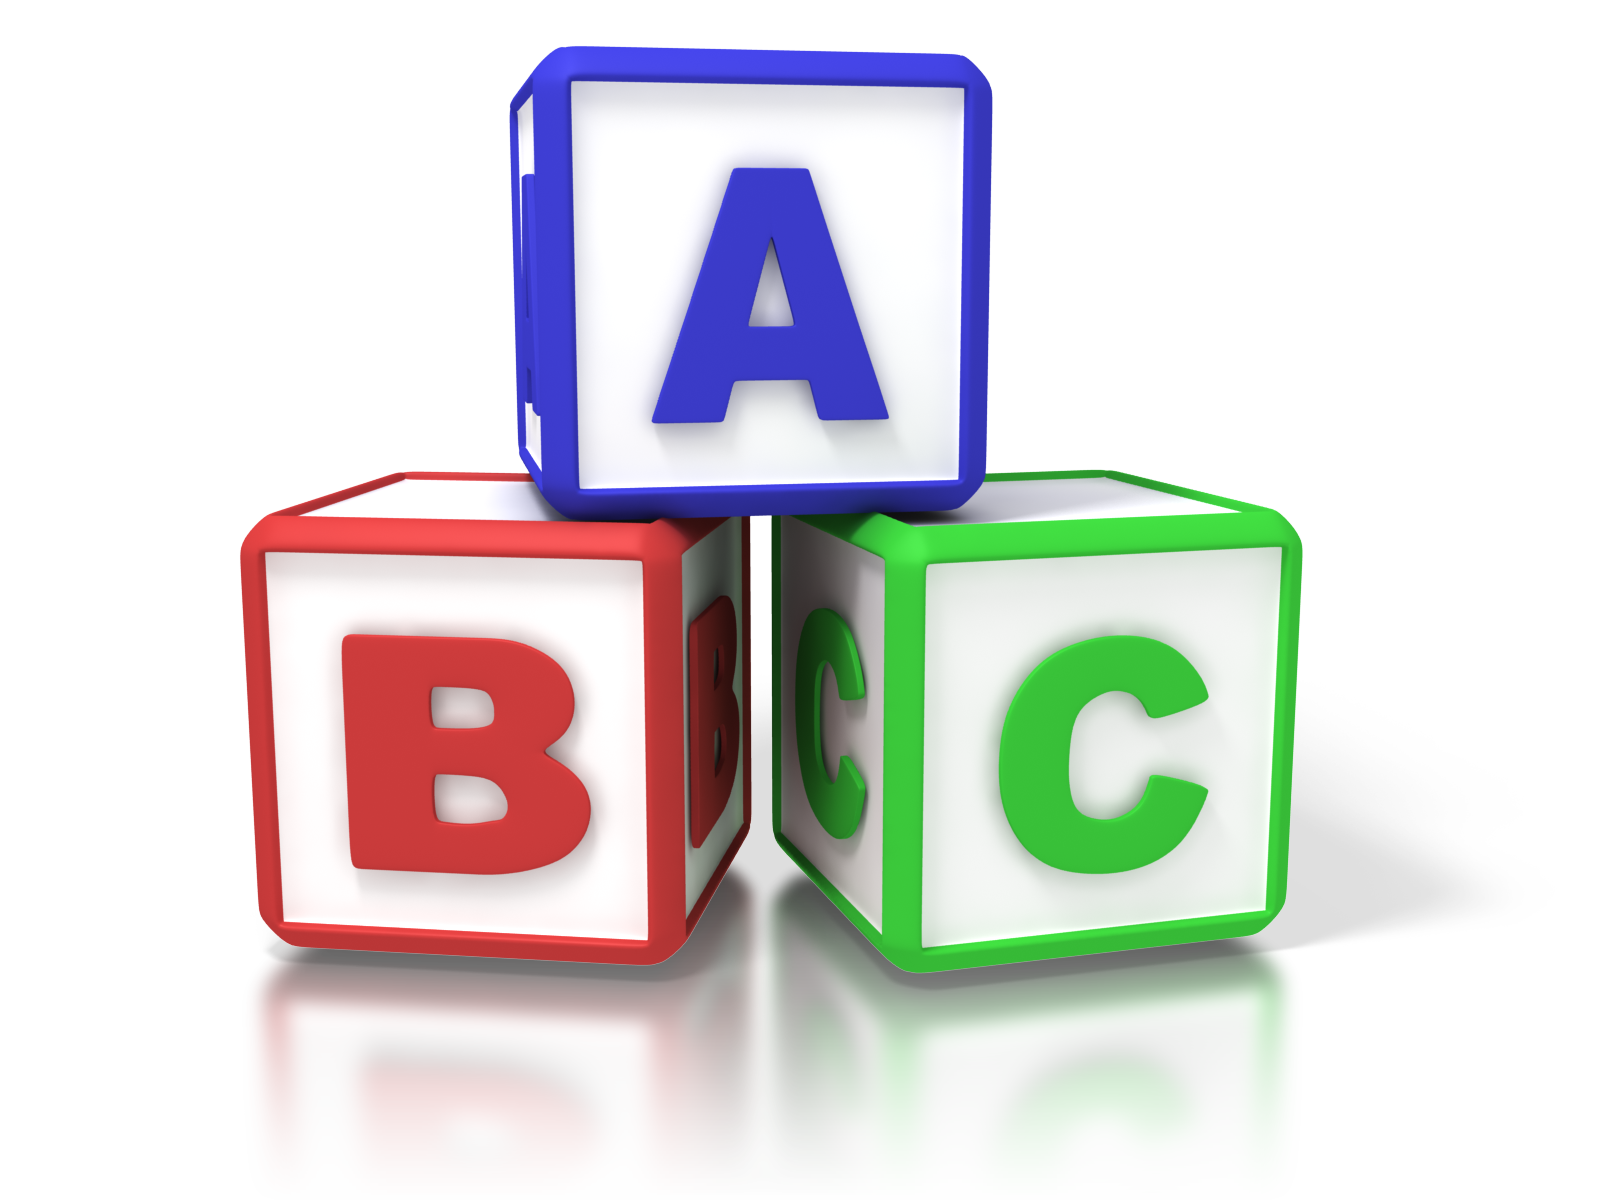 Abc building blocks clipart png stock To Get Real Change Figure Out The ABCs | SeytLines png stock